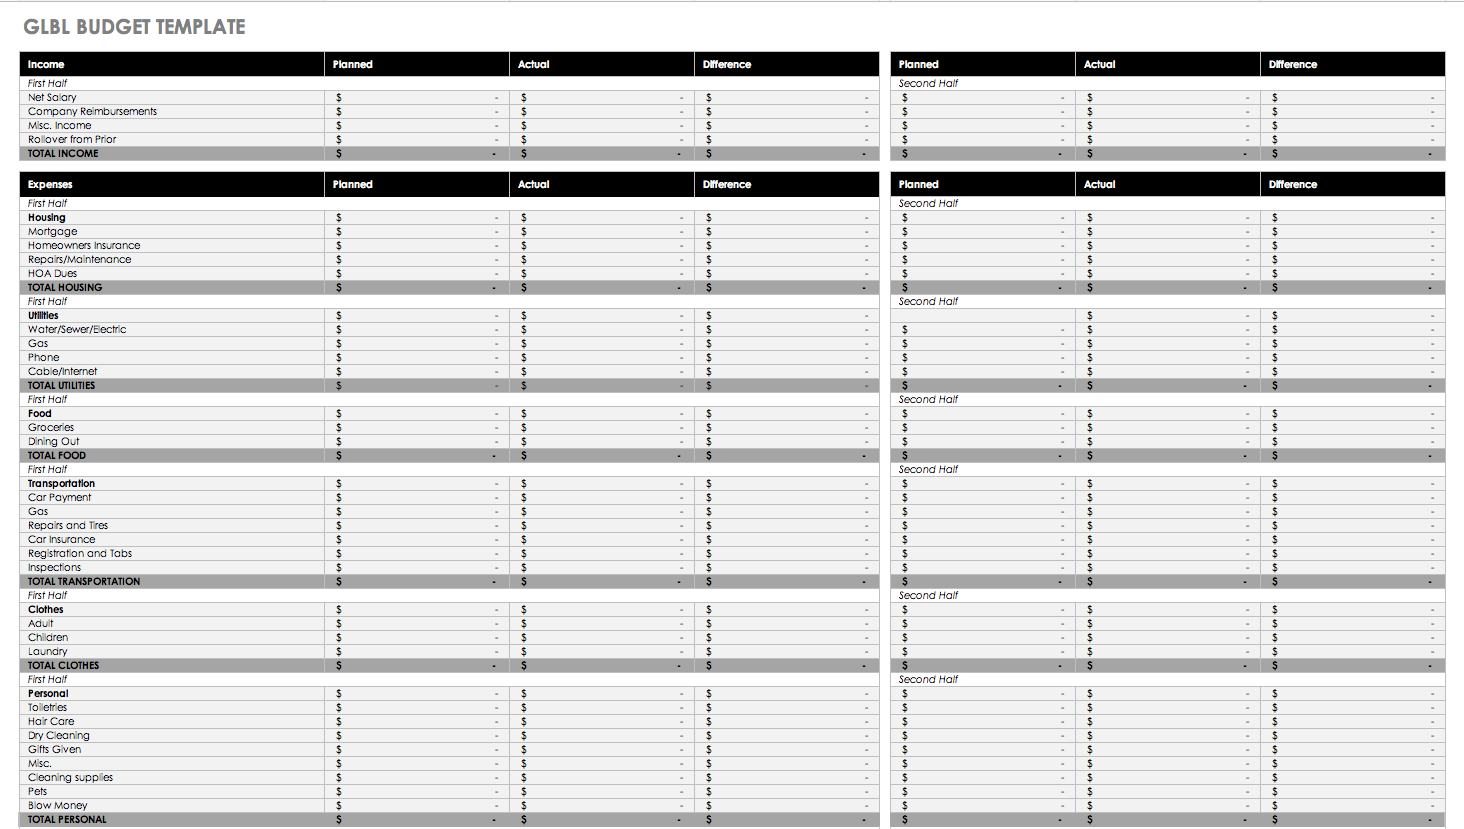 Personal Budget Planner Spreadsheet Regarding Free Budget Templates In Excel For Any Use